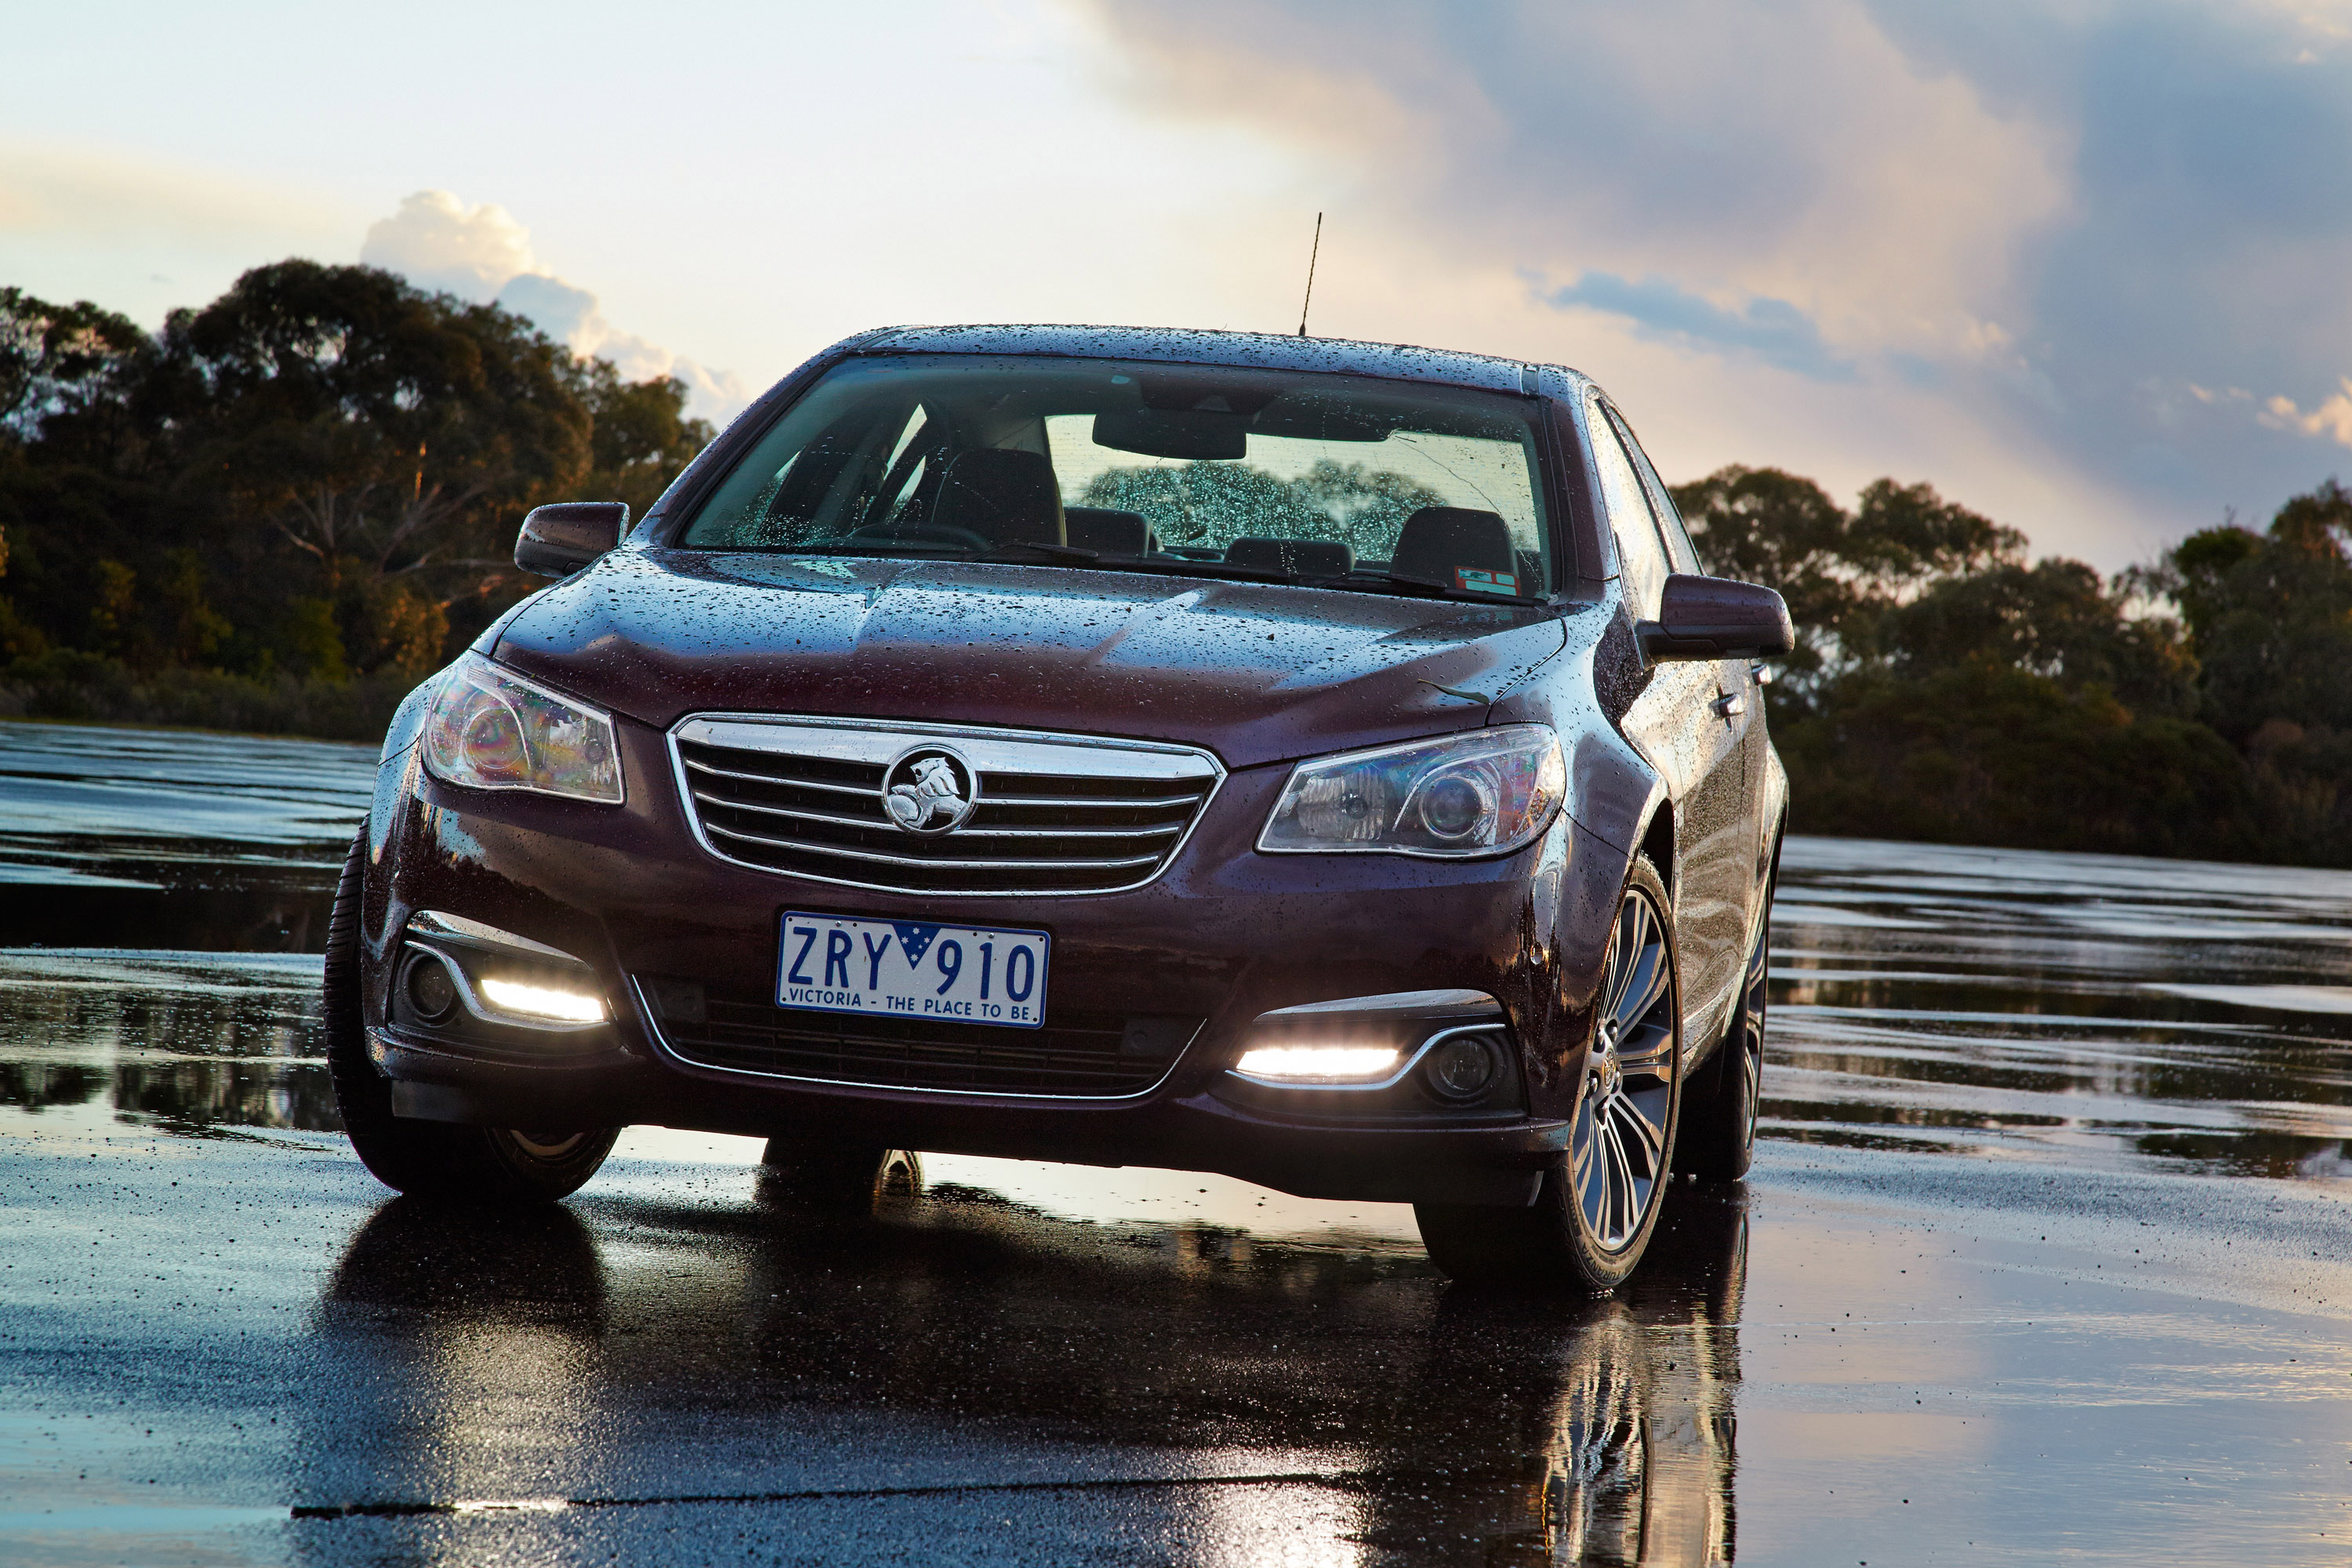 2014 holden vf commodore calais v images hd cars wallpaper 2014 holden vf commodore sportwagen calais v hd pictures 2014 holden vf commodore sportwagen calais v vanachro Image collections